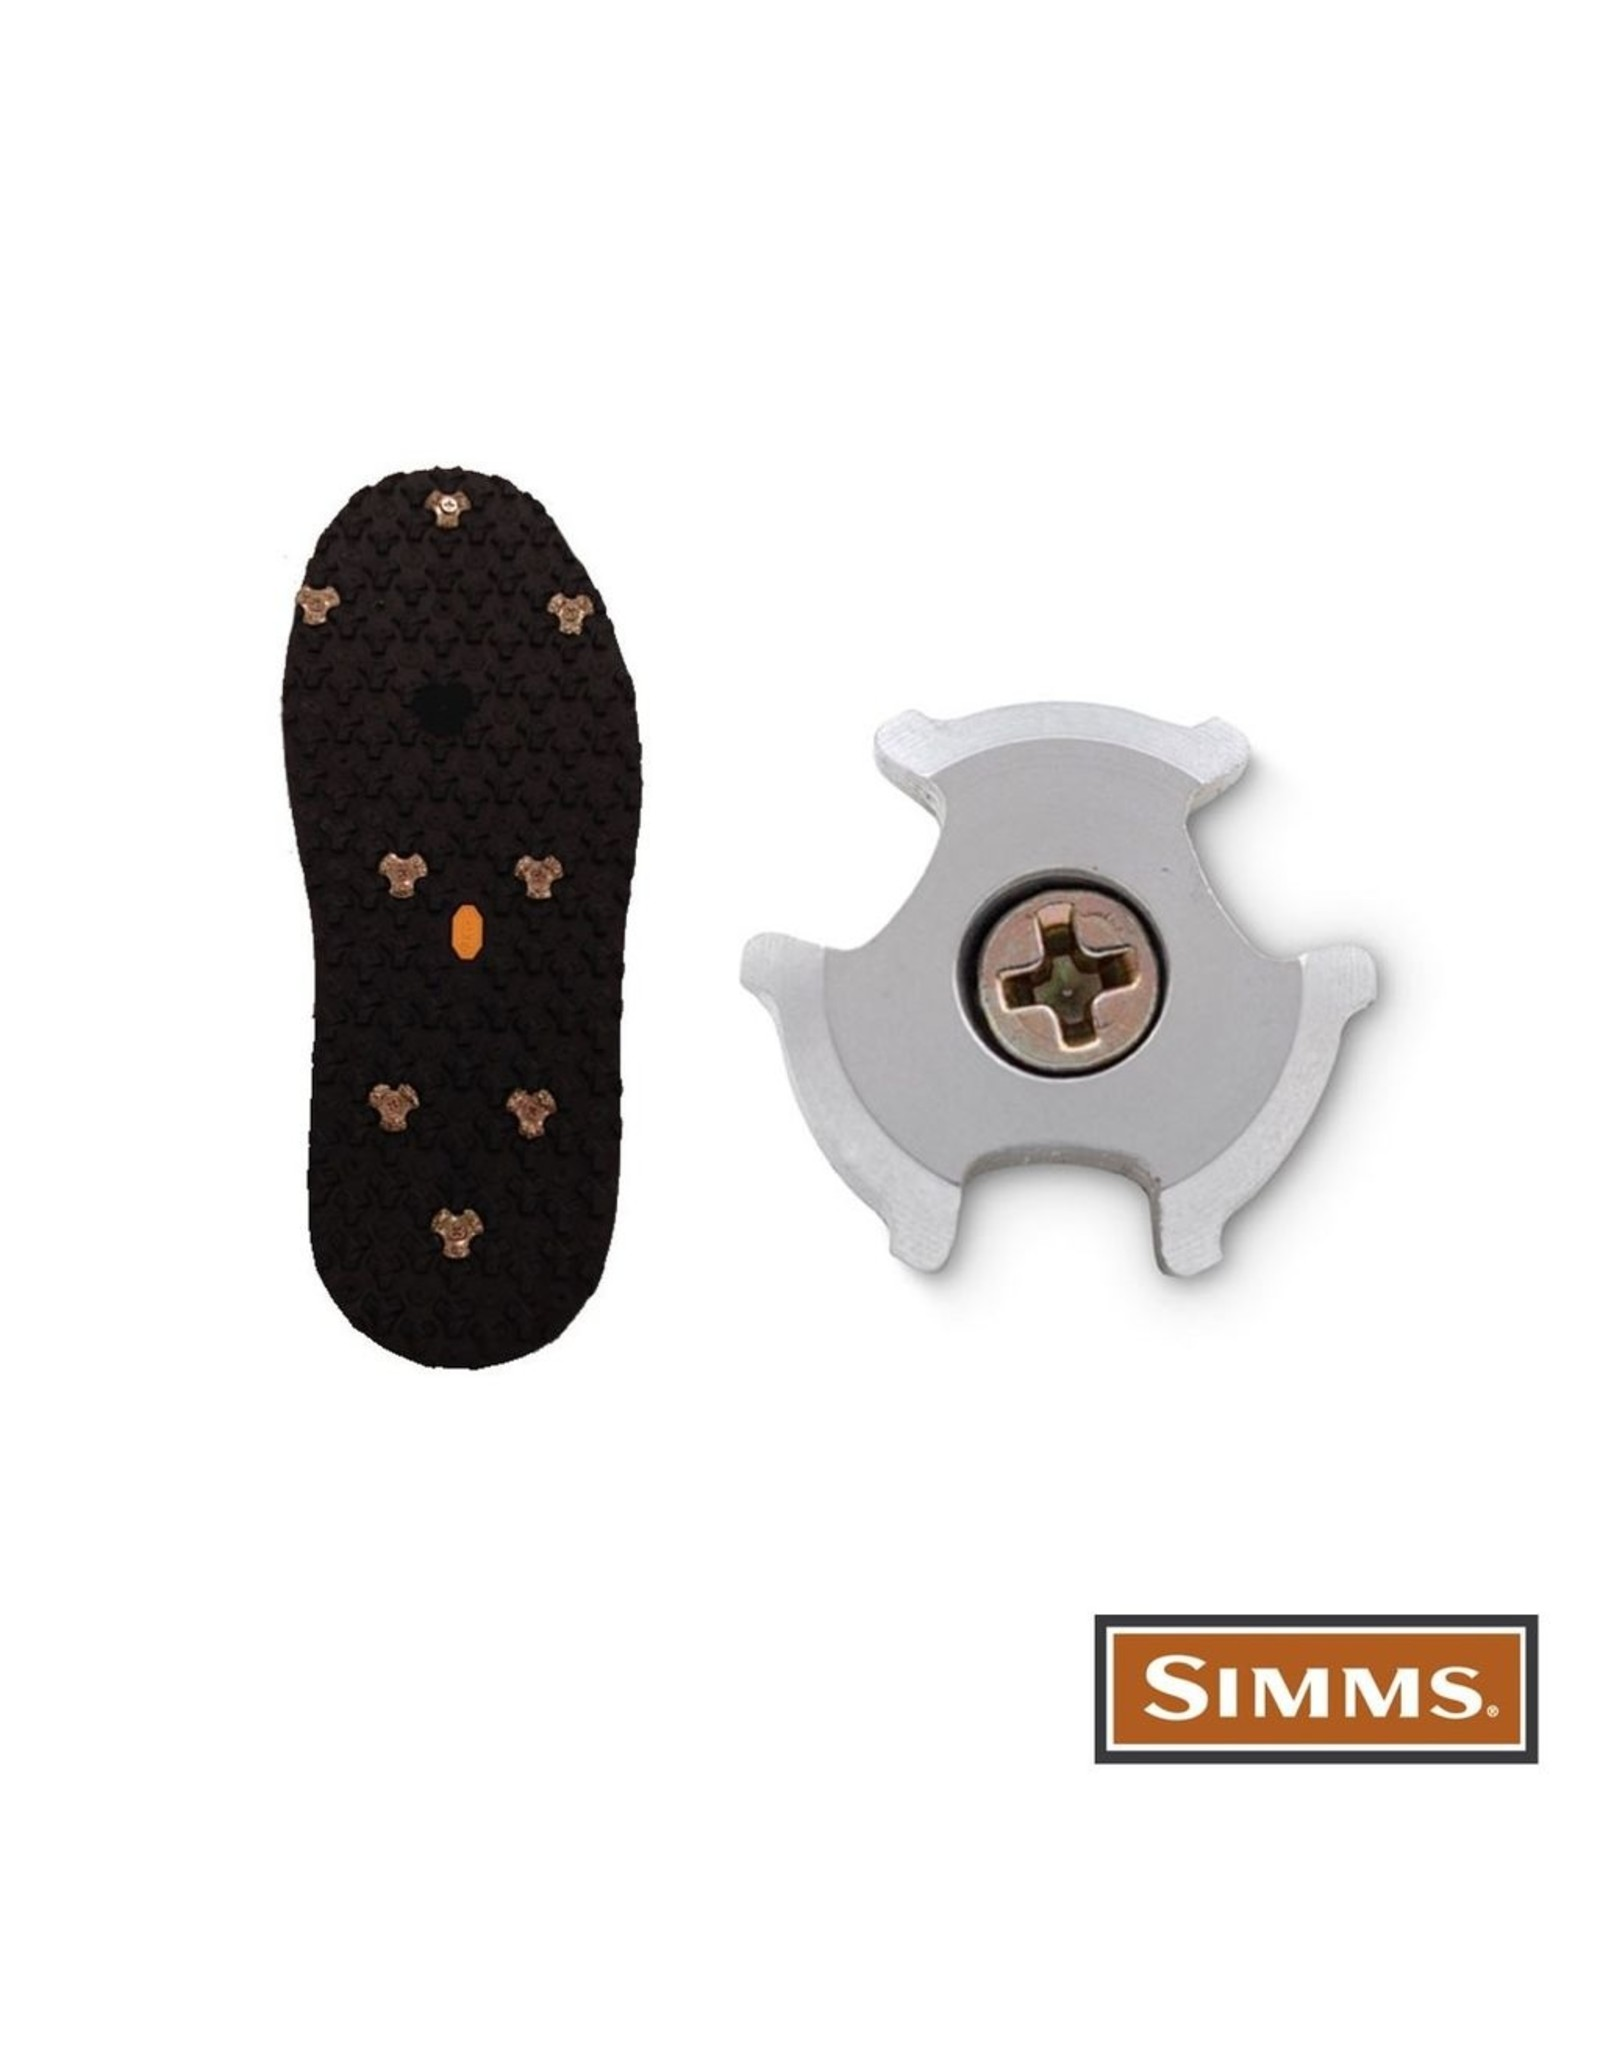 Simms Simms Alumibite Cleat